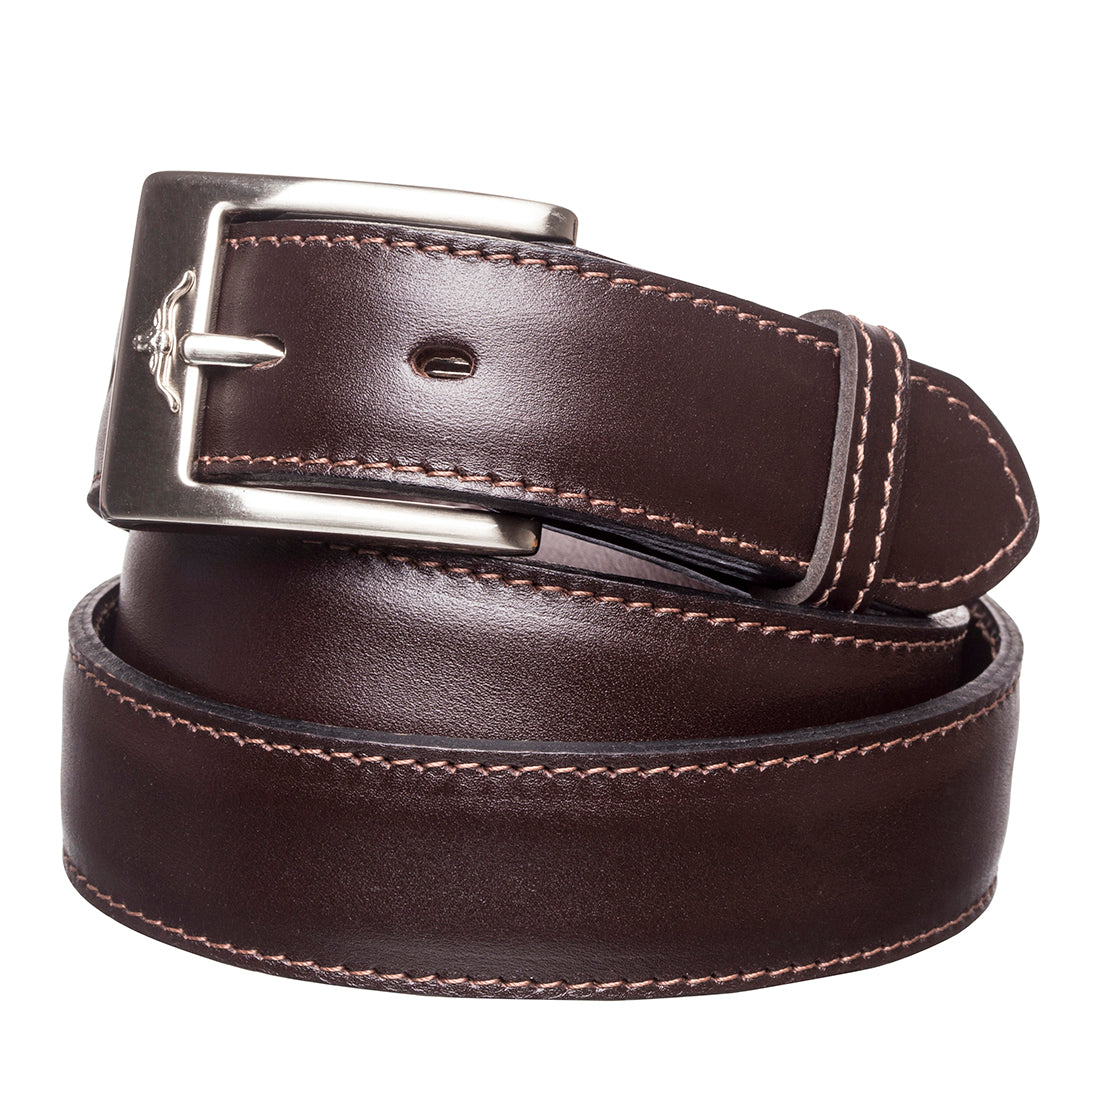 "R.M.Williams Chestnut 1 1/4"" Yearling Dress Belt"